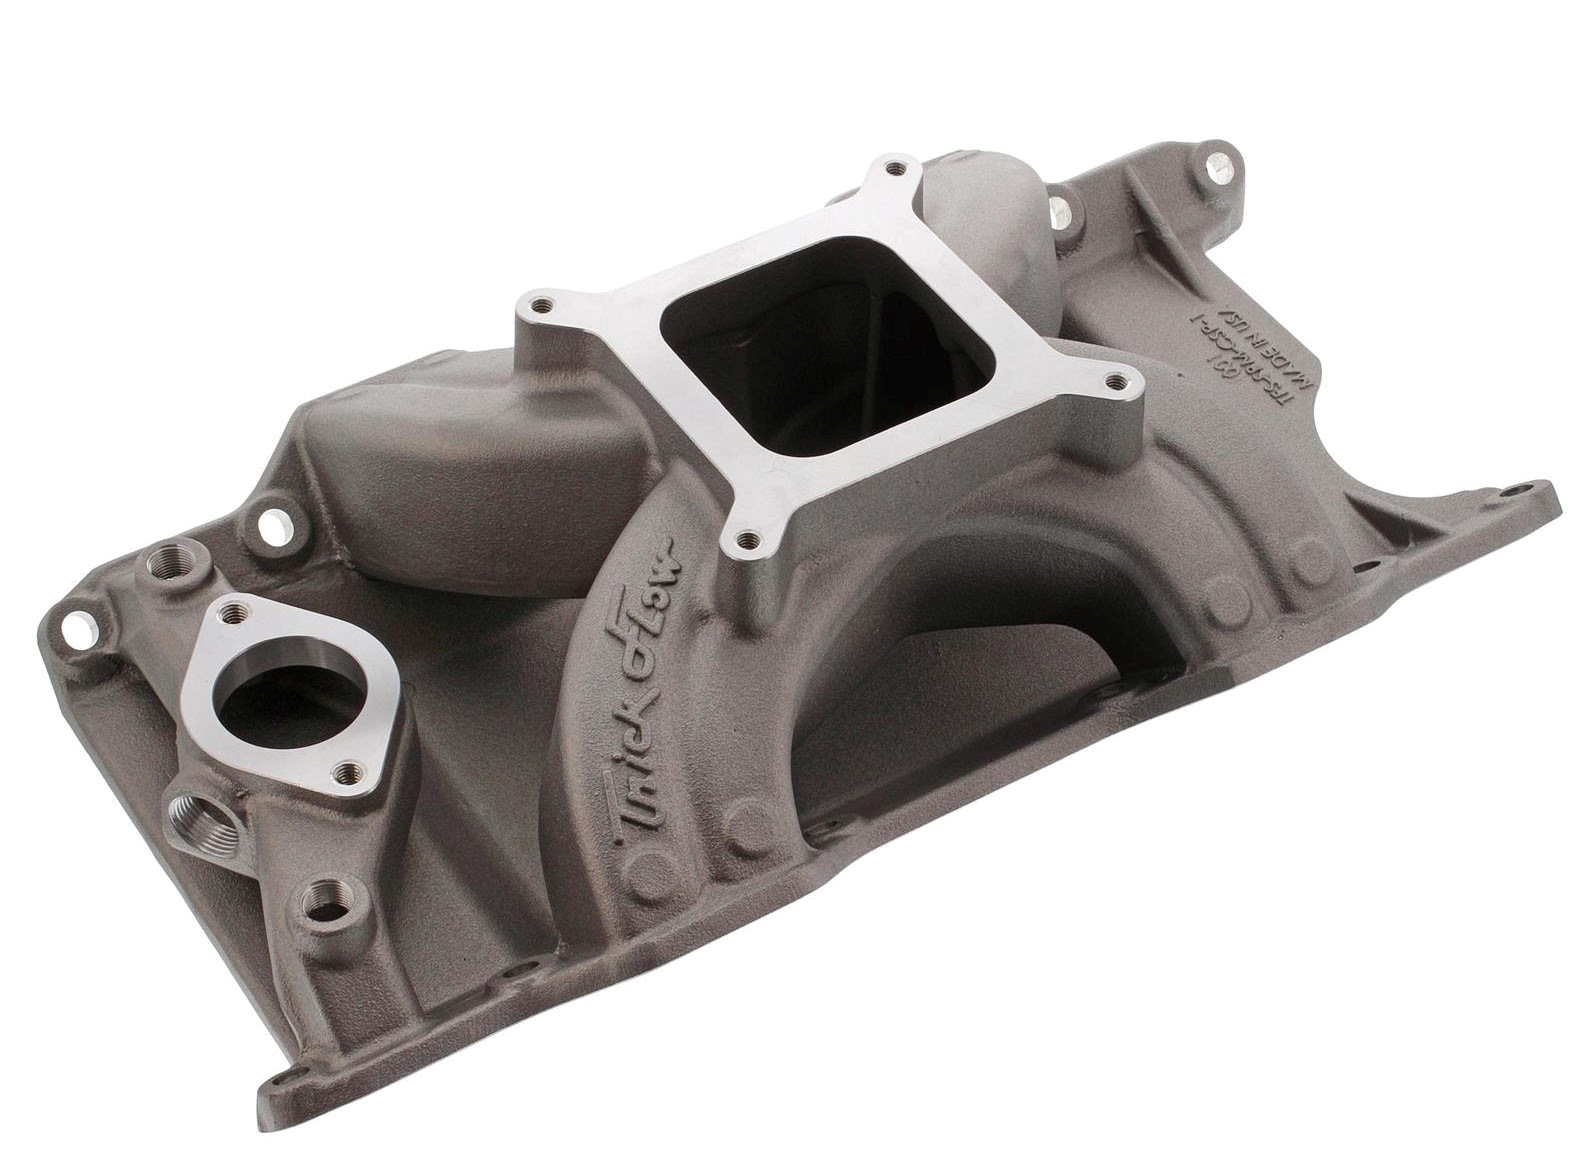 Looking For More Power Our Of Your LA Series Mopar Small Block? The Trick Flow Track Heat Intake Manifold Is Your Ticket!